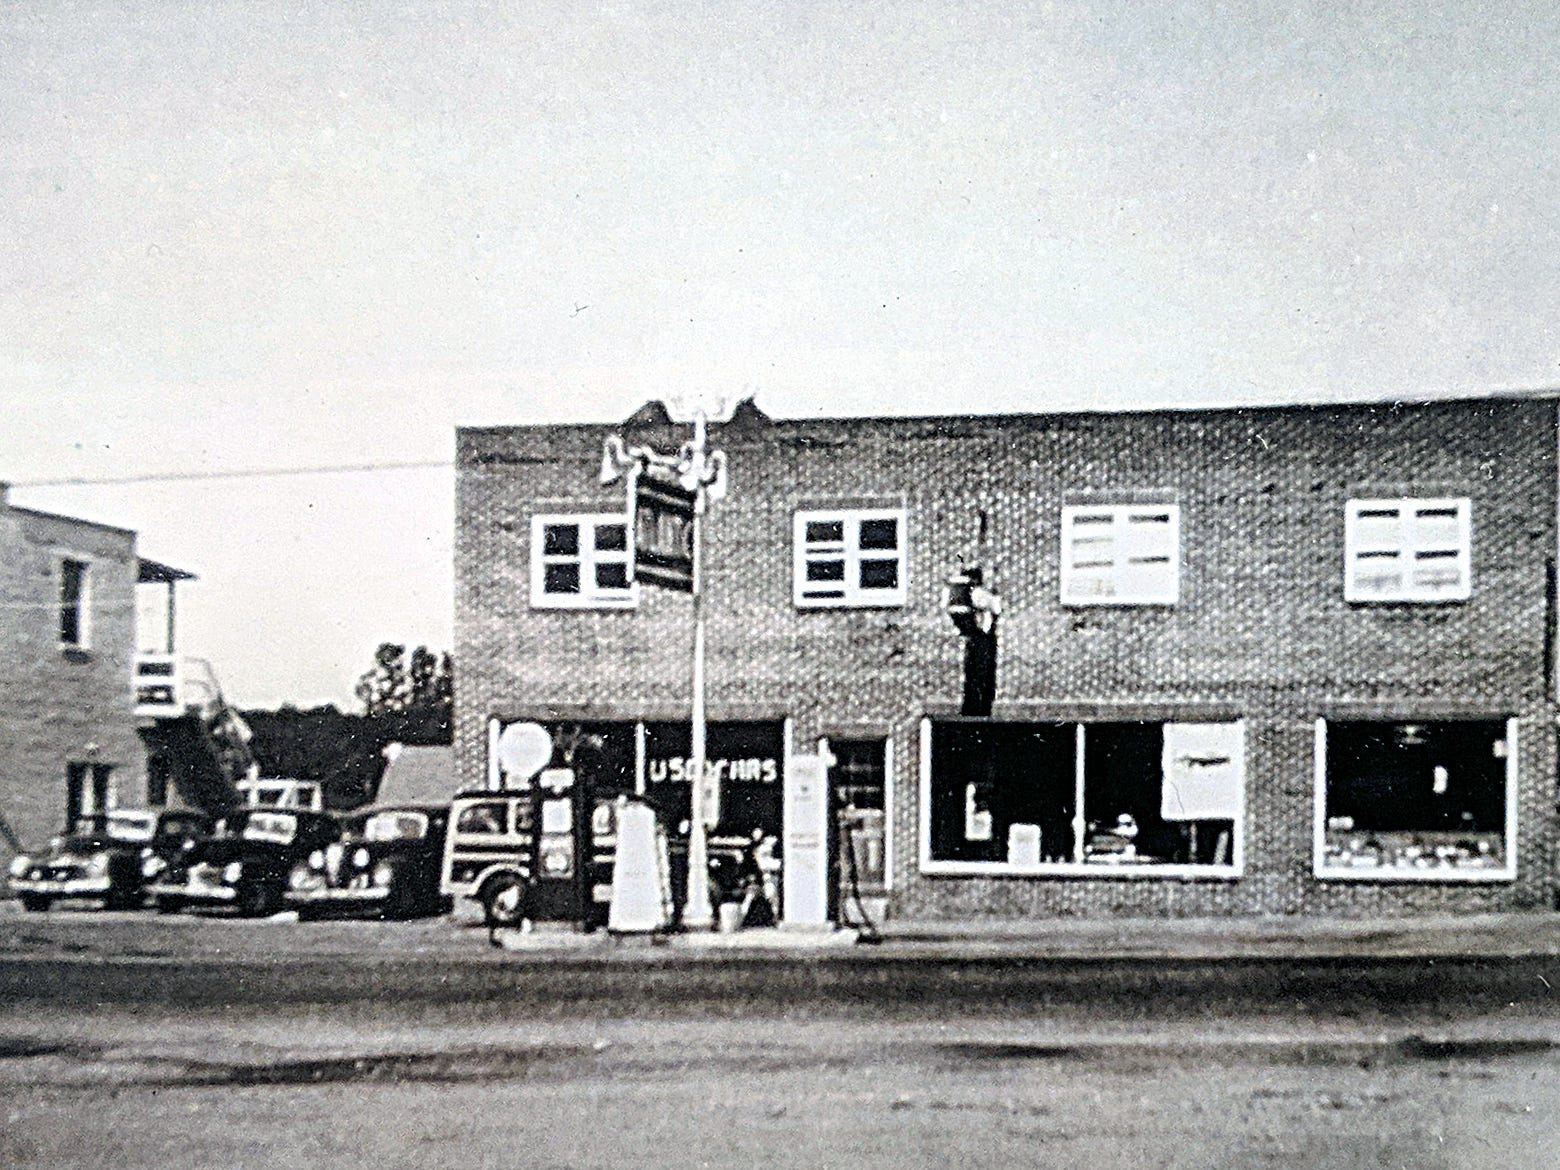 This is the Smith car dealership as it looked in 1950. It sold Willys, Hudsons and later American Motors.